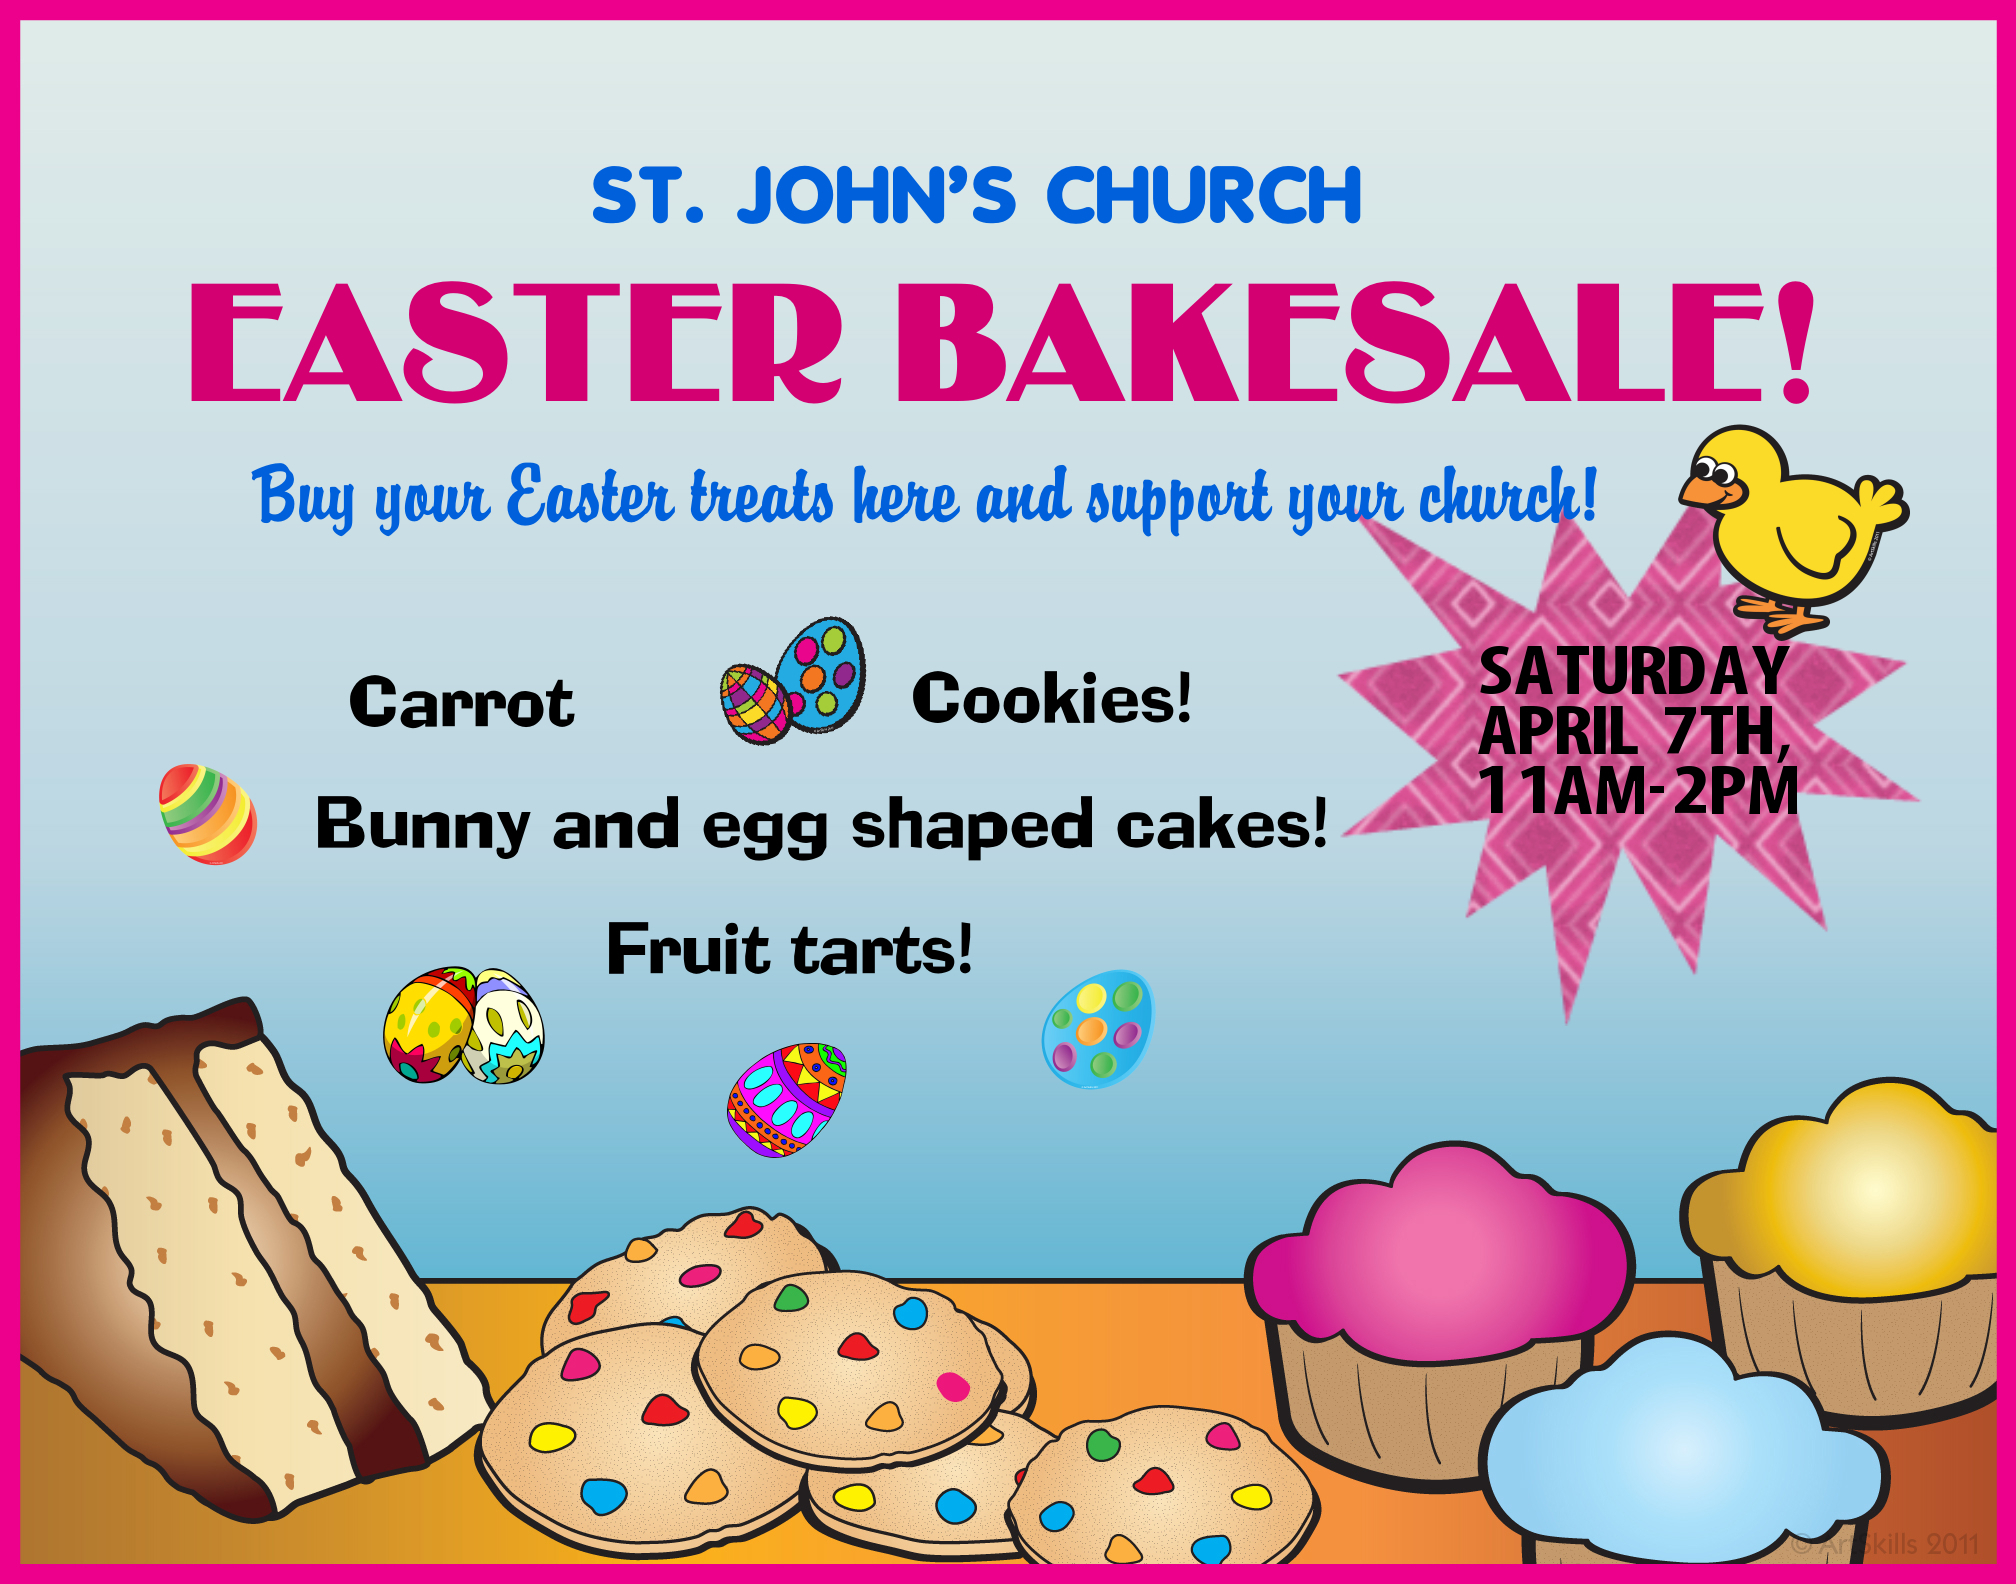 Create A Easter Bake Sale Poster Church Bake Sale Poster